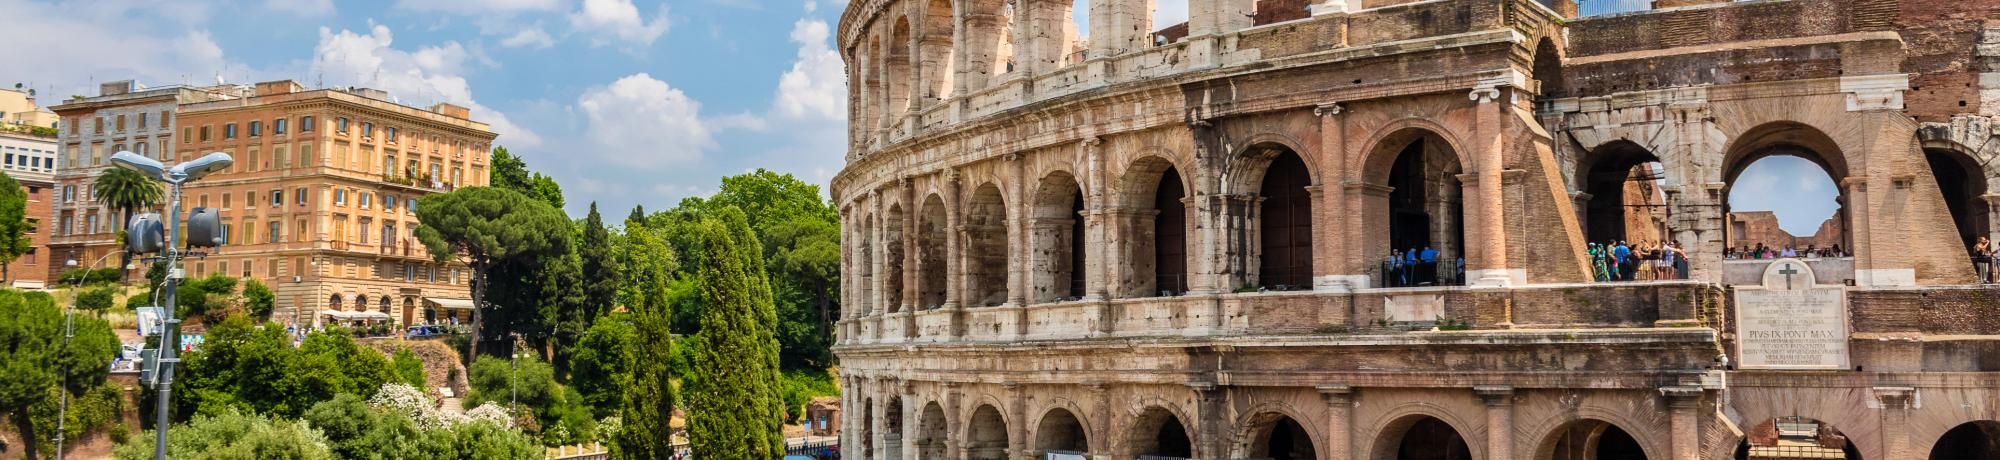 UC Davis Study Abroad, Seminar Abroad Italy, Rome - Art and the City Program, Header Image, Overview Page